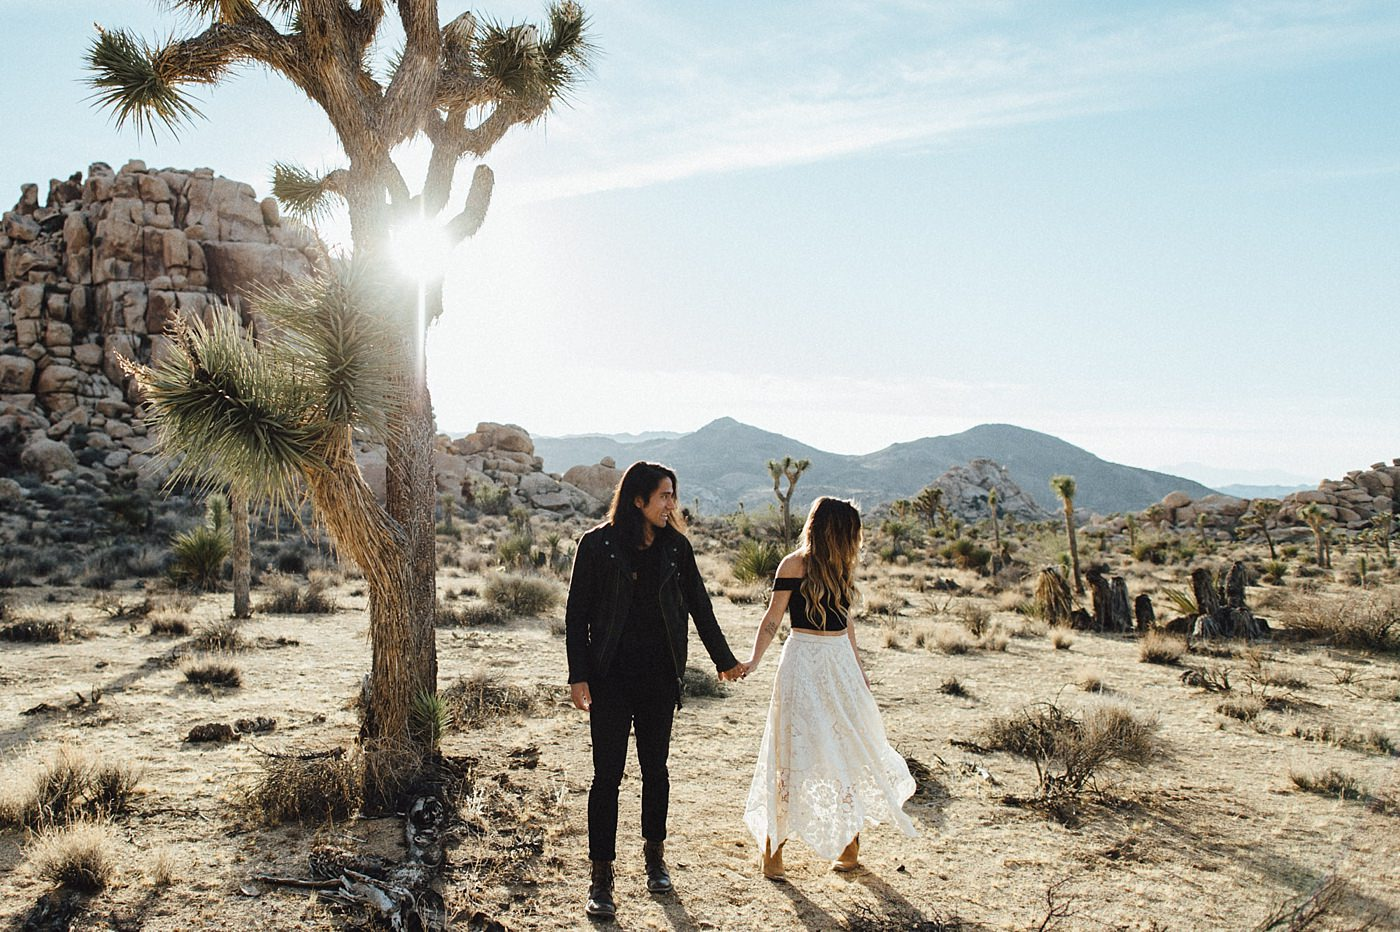 international-elopement-photographer_0158 Kinsey & Josh & Banjo Photographer in Joshuatreeinternational elopement photographer 0158